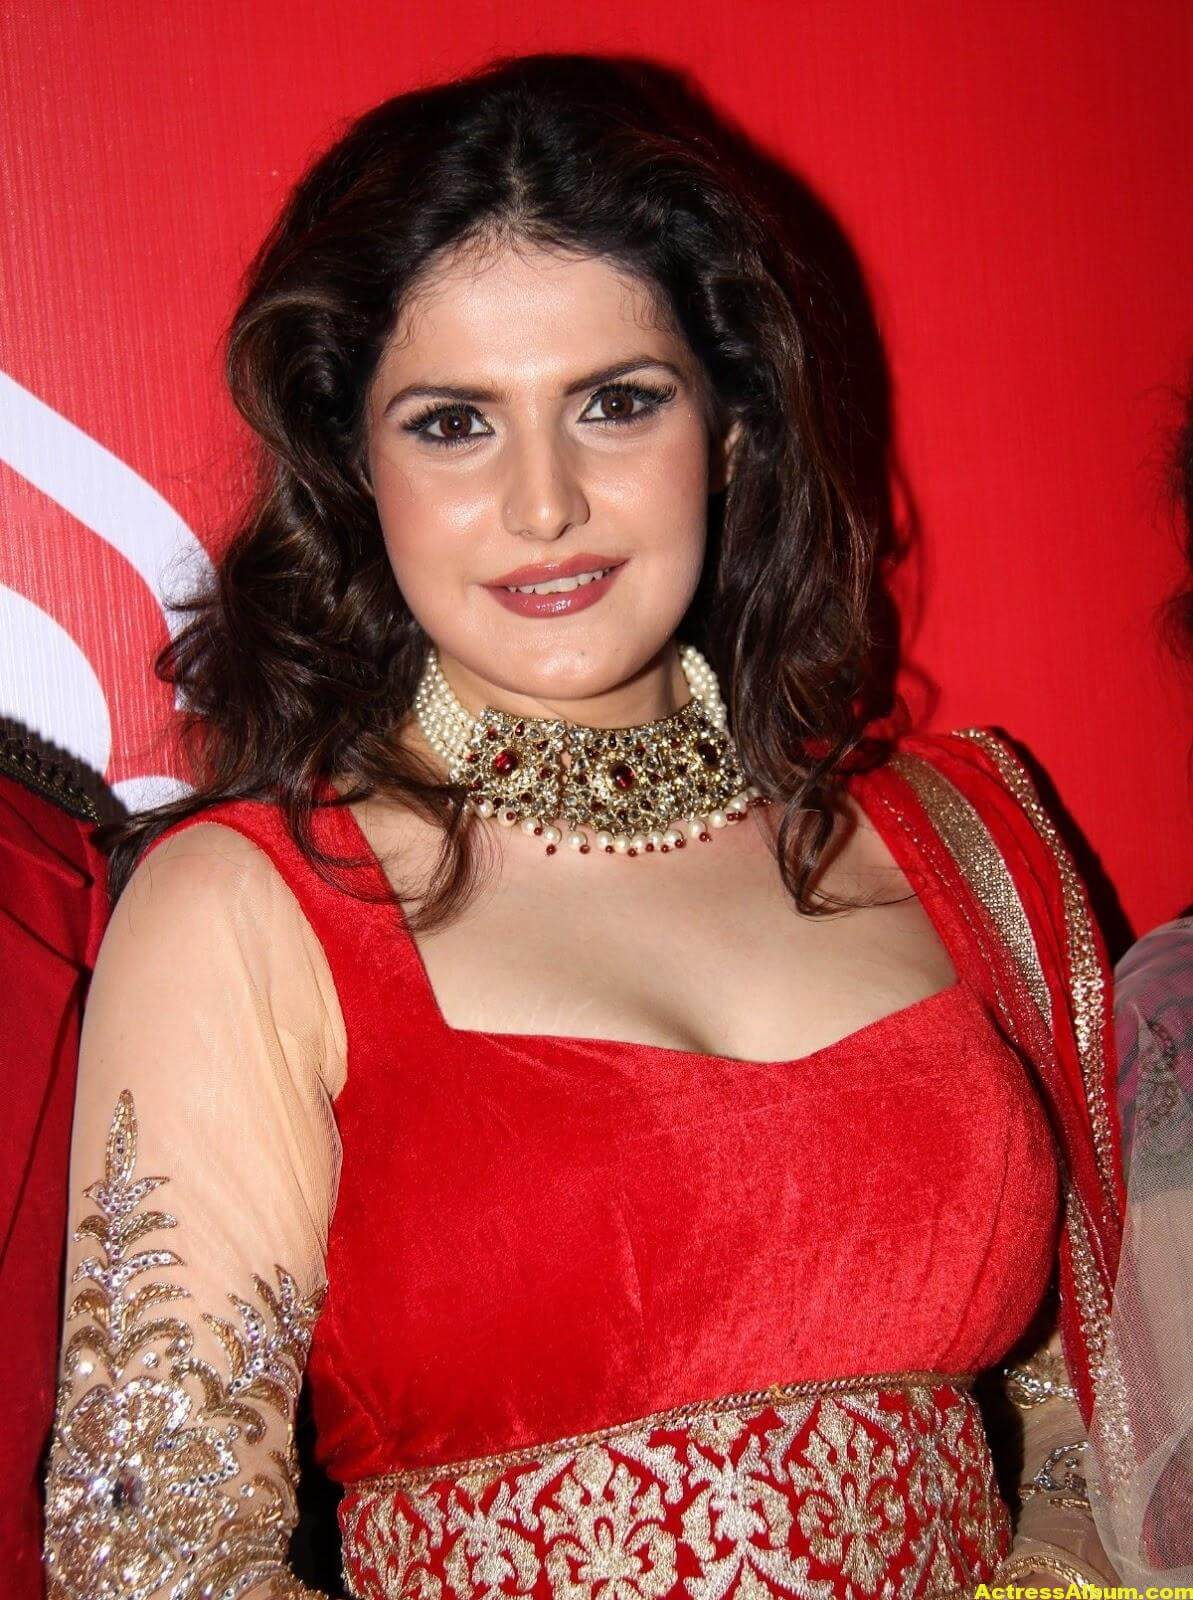 Zarine Khan Hot Photoshoot In Red Dress 6